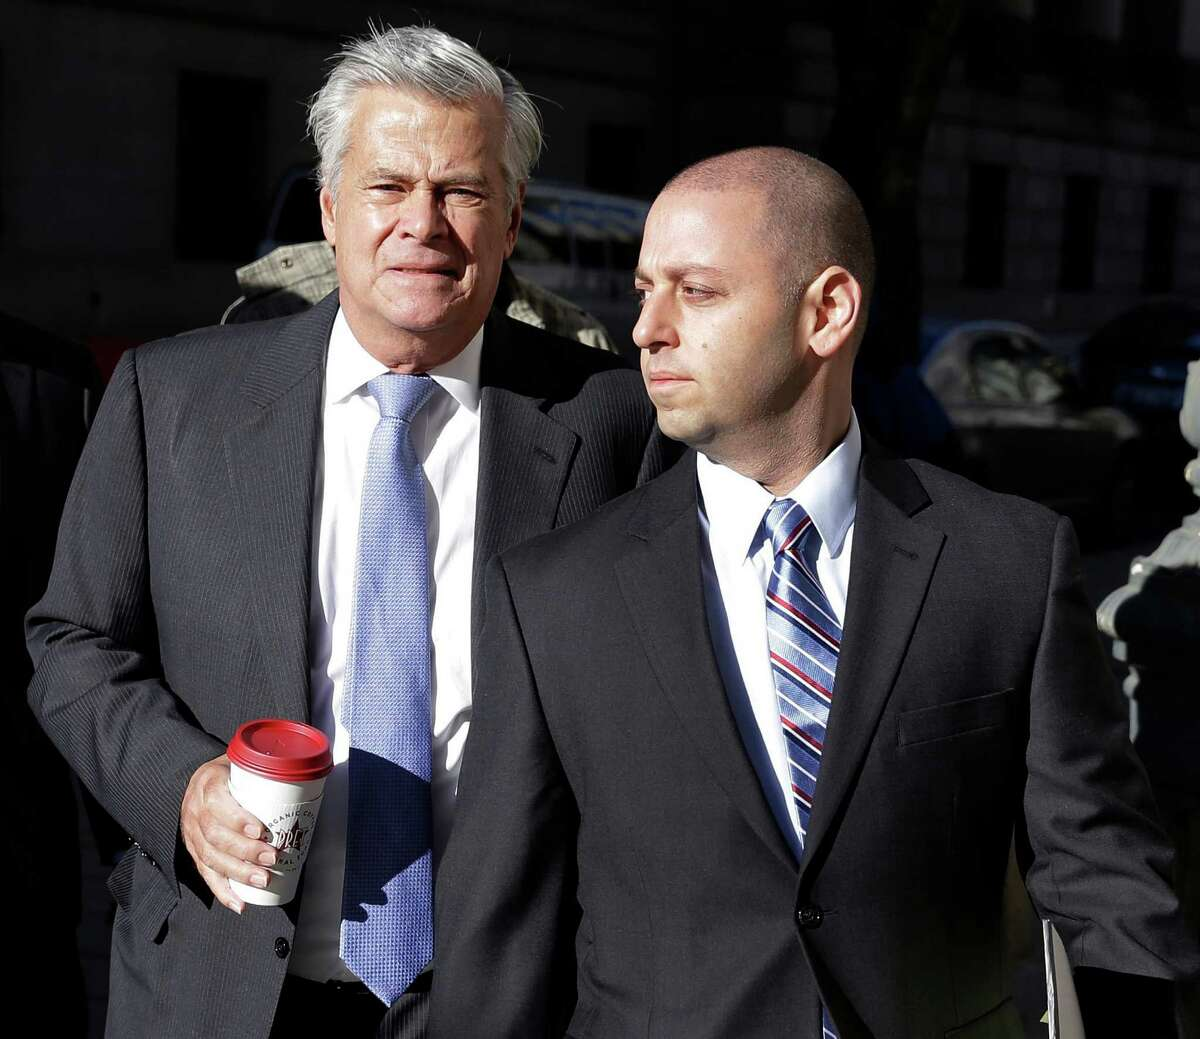 FILE - In this Nov. 17, 2015, file photo, New York Sen. Dean Skelos, left, and his son Adam Skelos arrive to court for jury selection in the pair?'s extortion trial, in New York. Dean Skelos and his son Adam will face sentencing on federal corruption charges in Manhattan at 10:30 a.m. Thursday.(AP Photo/Seth Wenig)